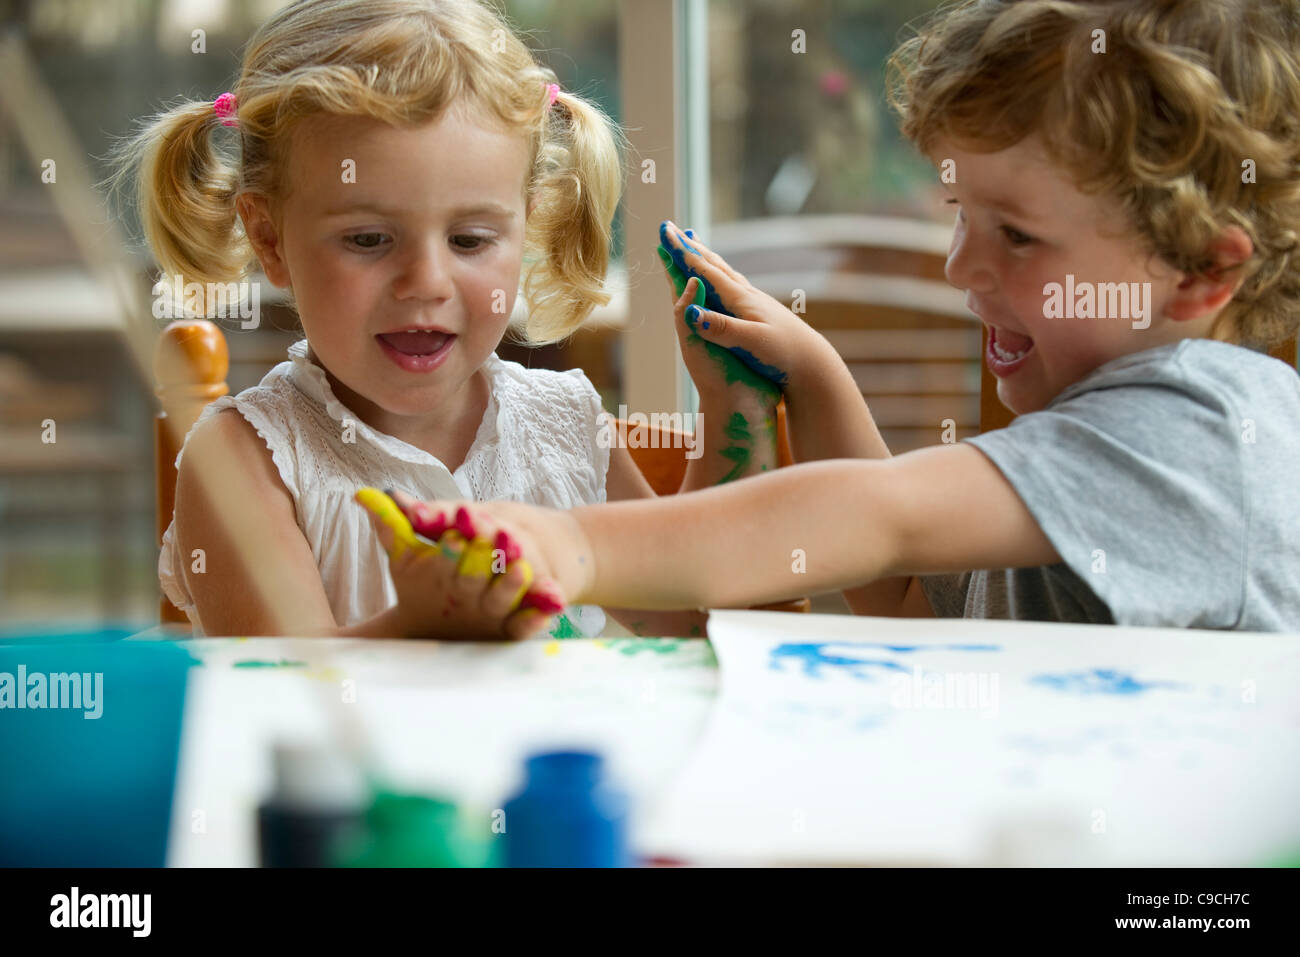 Children playing with paint together - Stock Image